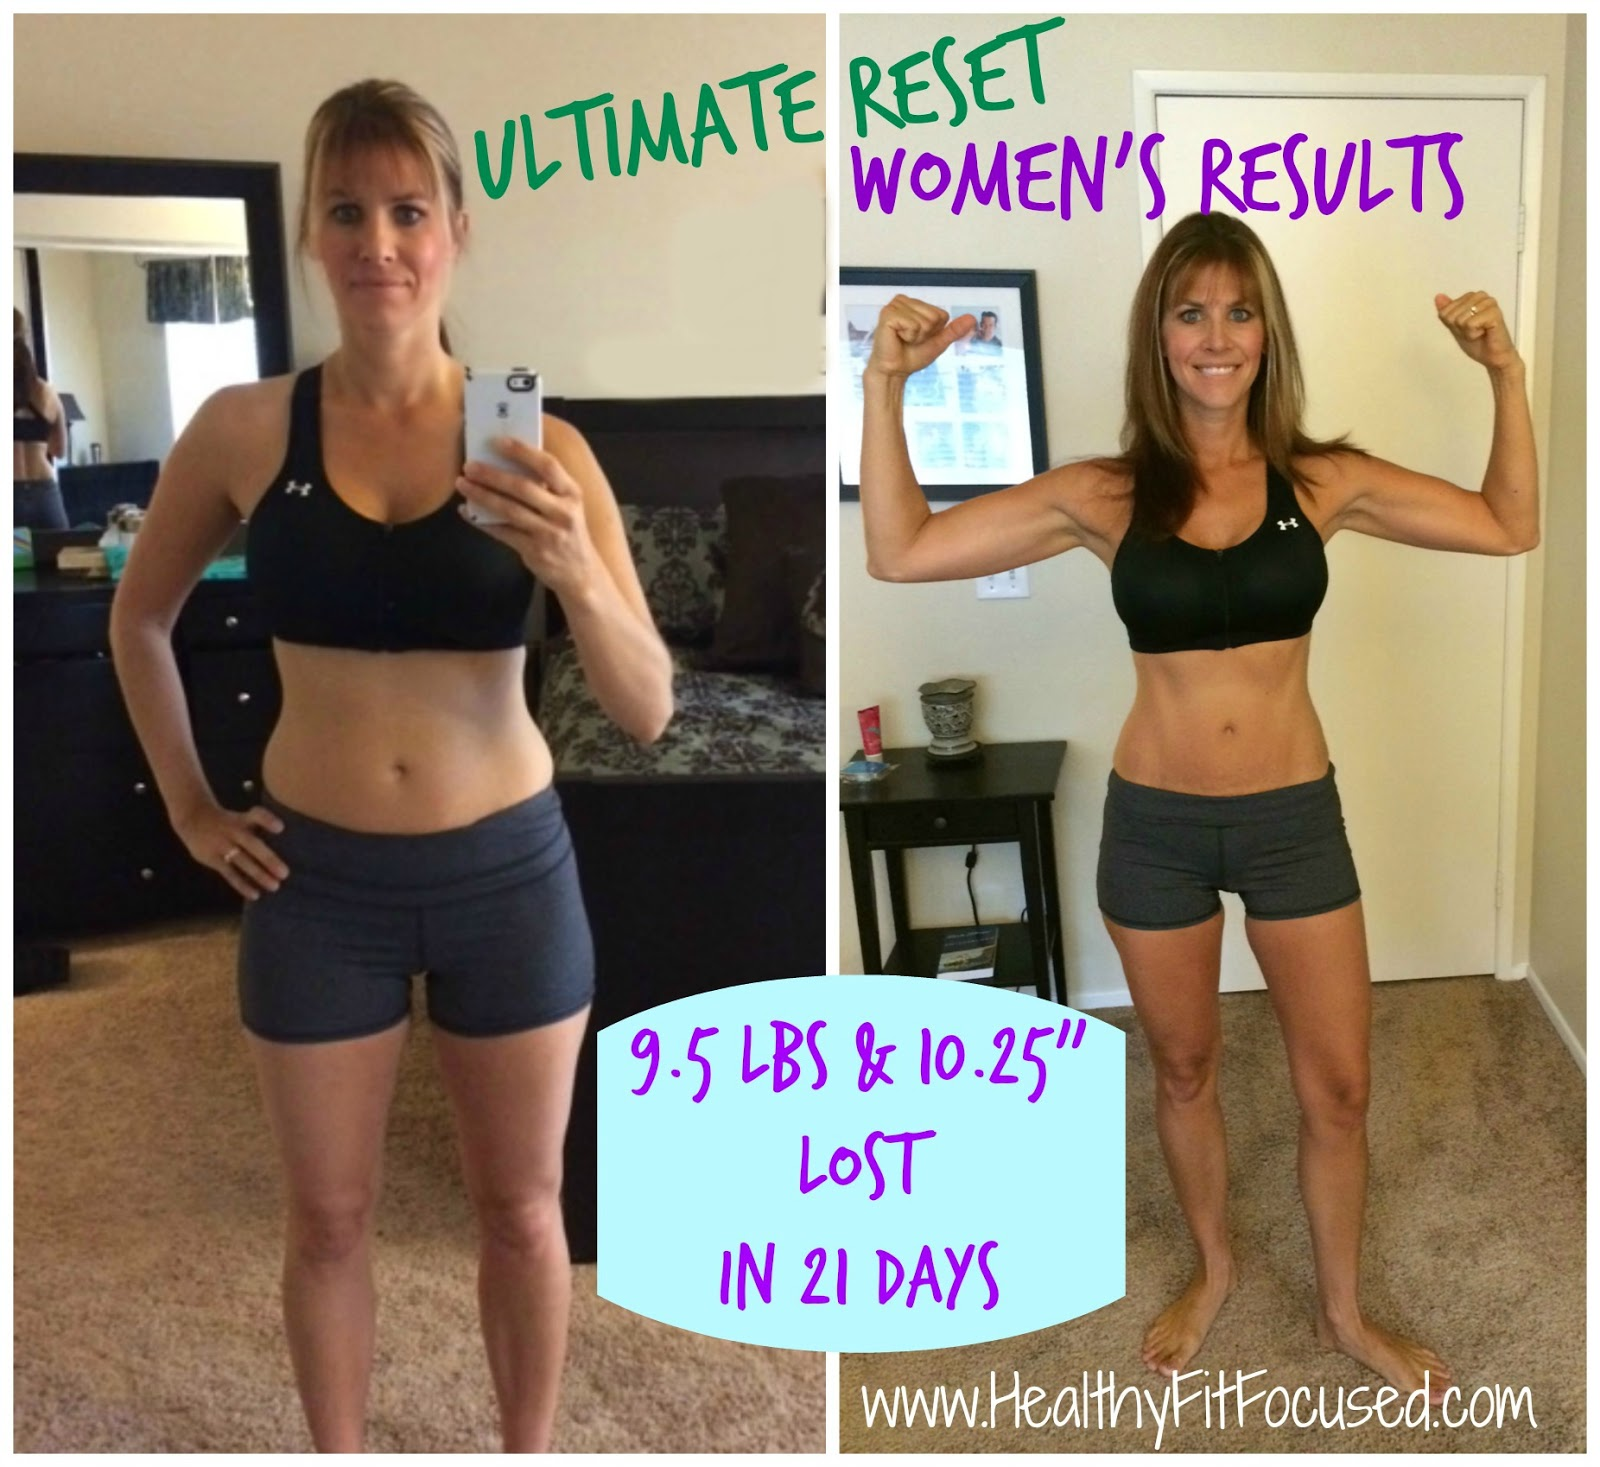 Ultimate Reset Women's Results, women's transformation